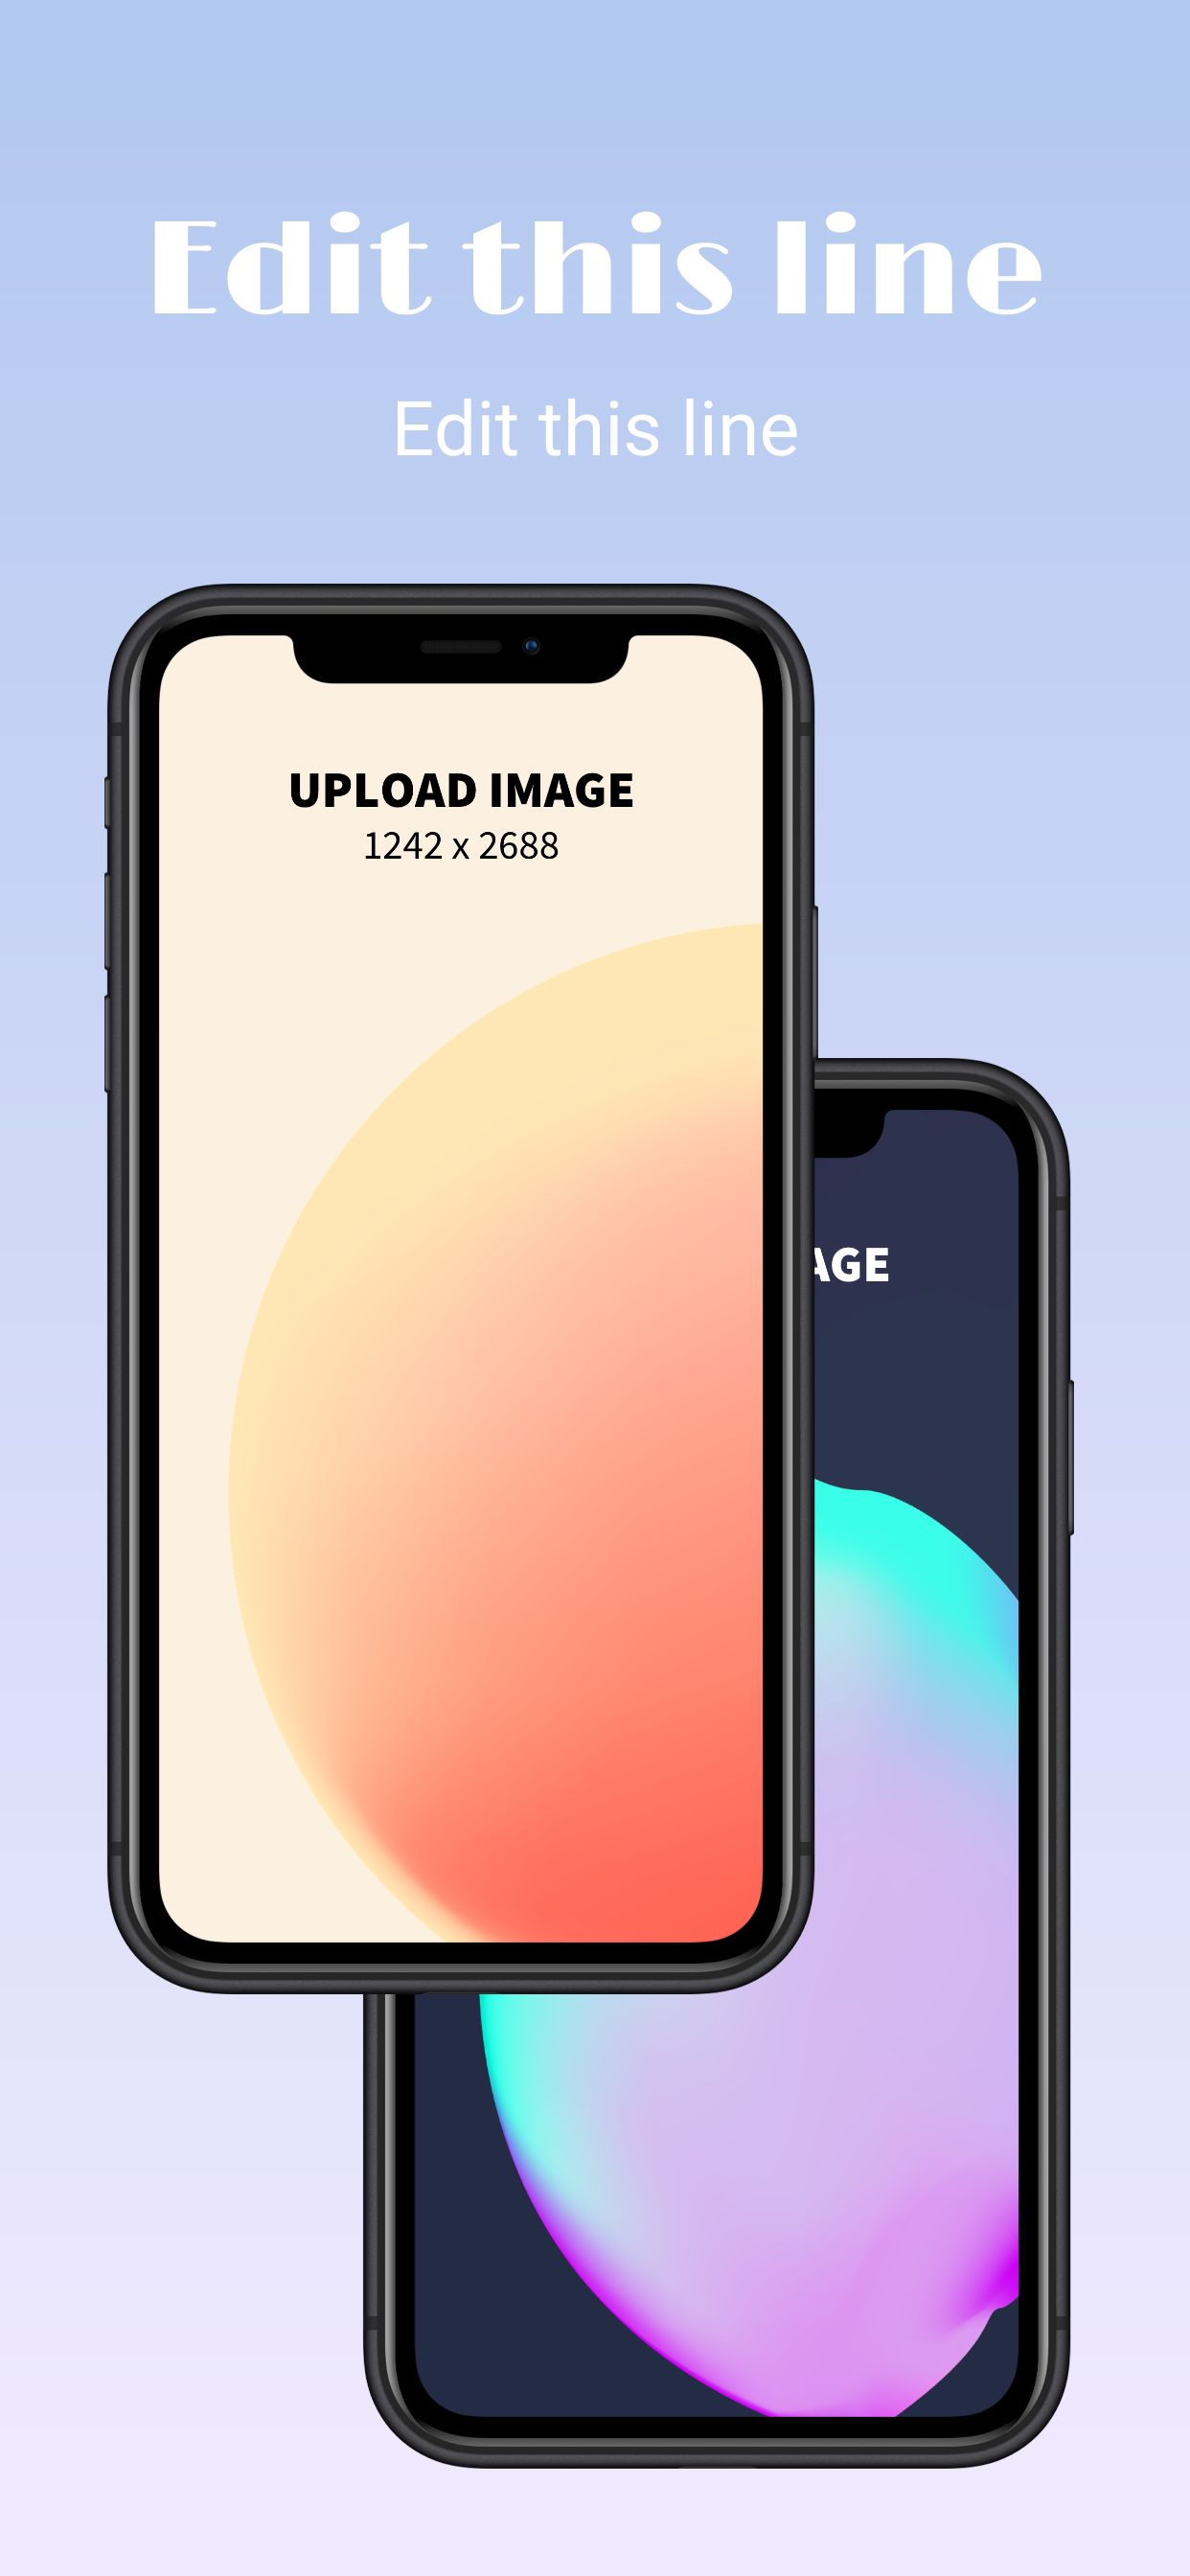 App Store screenshot featuring two photorealistic iPhone XS Max frames and two lines of copy.